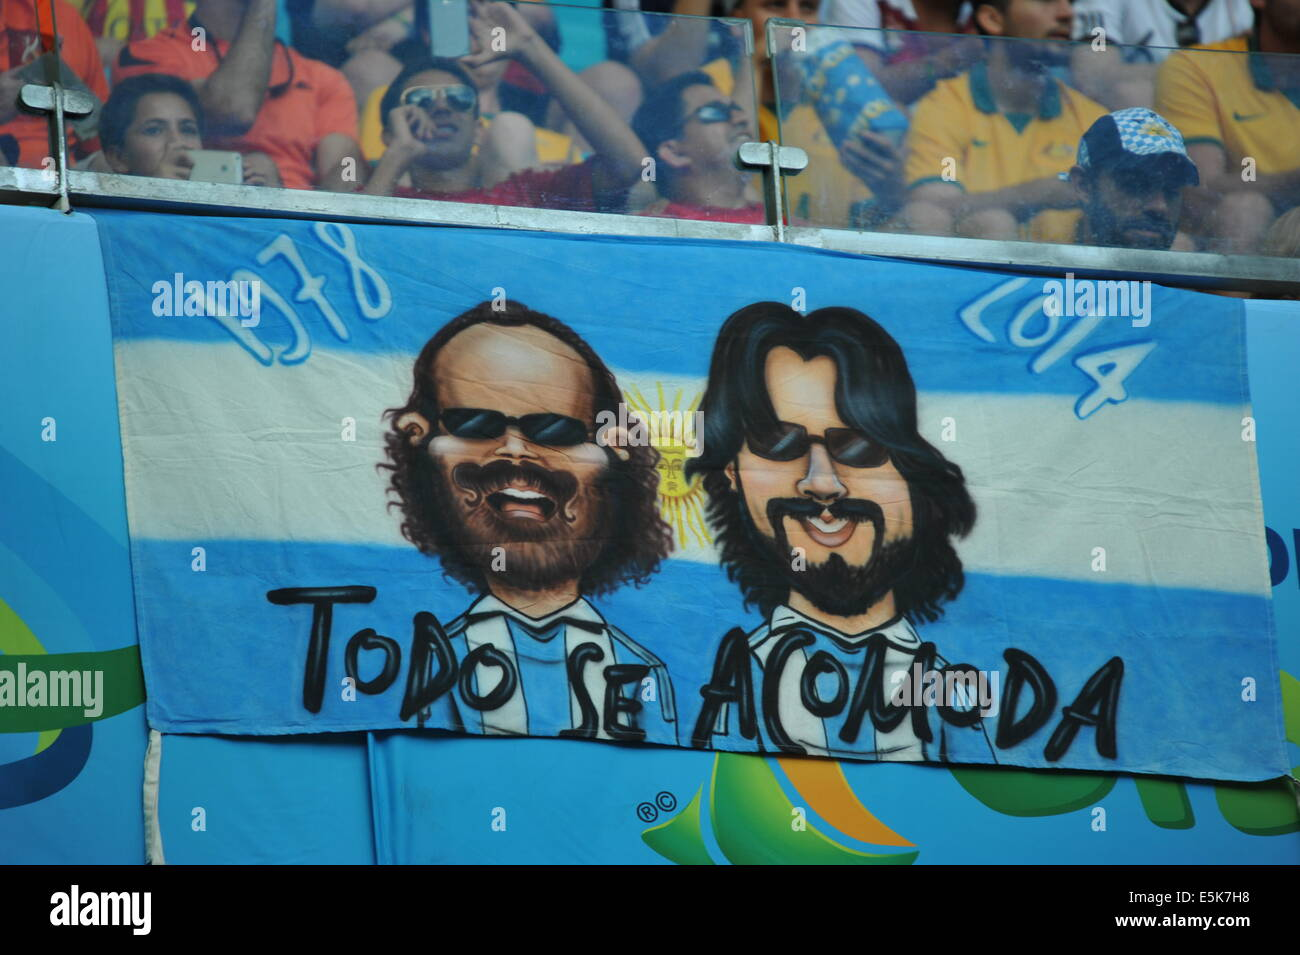 Argentinischer Fanblock, WM 2014, Salvador da Bahia, Brasilien. Stock Photo